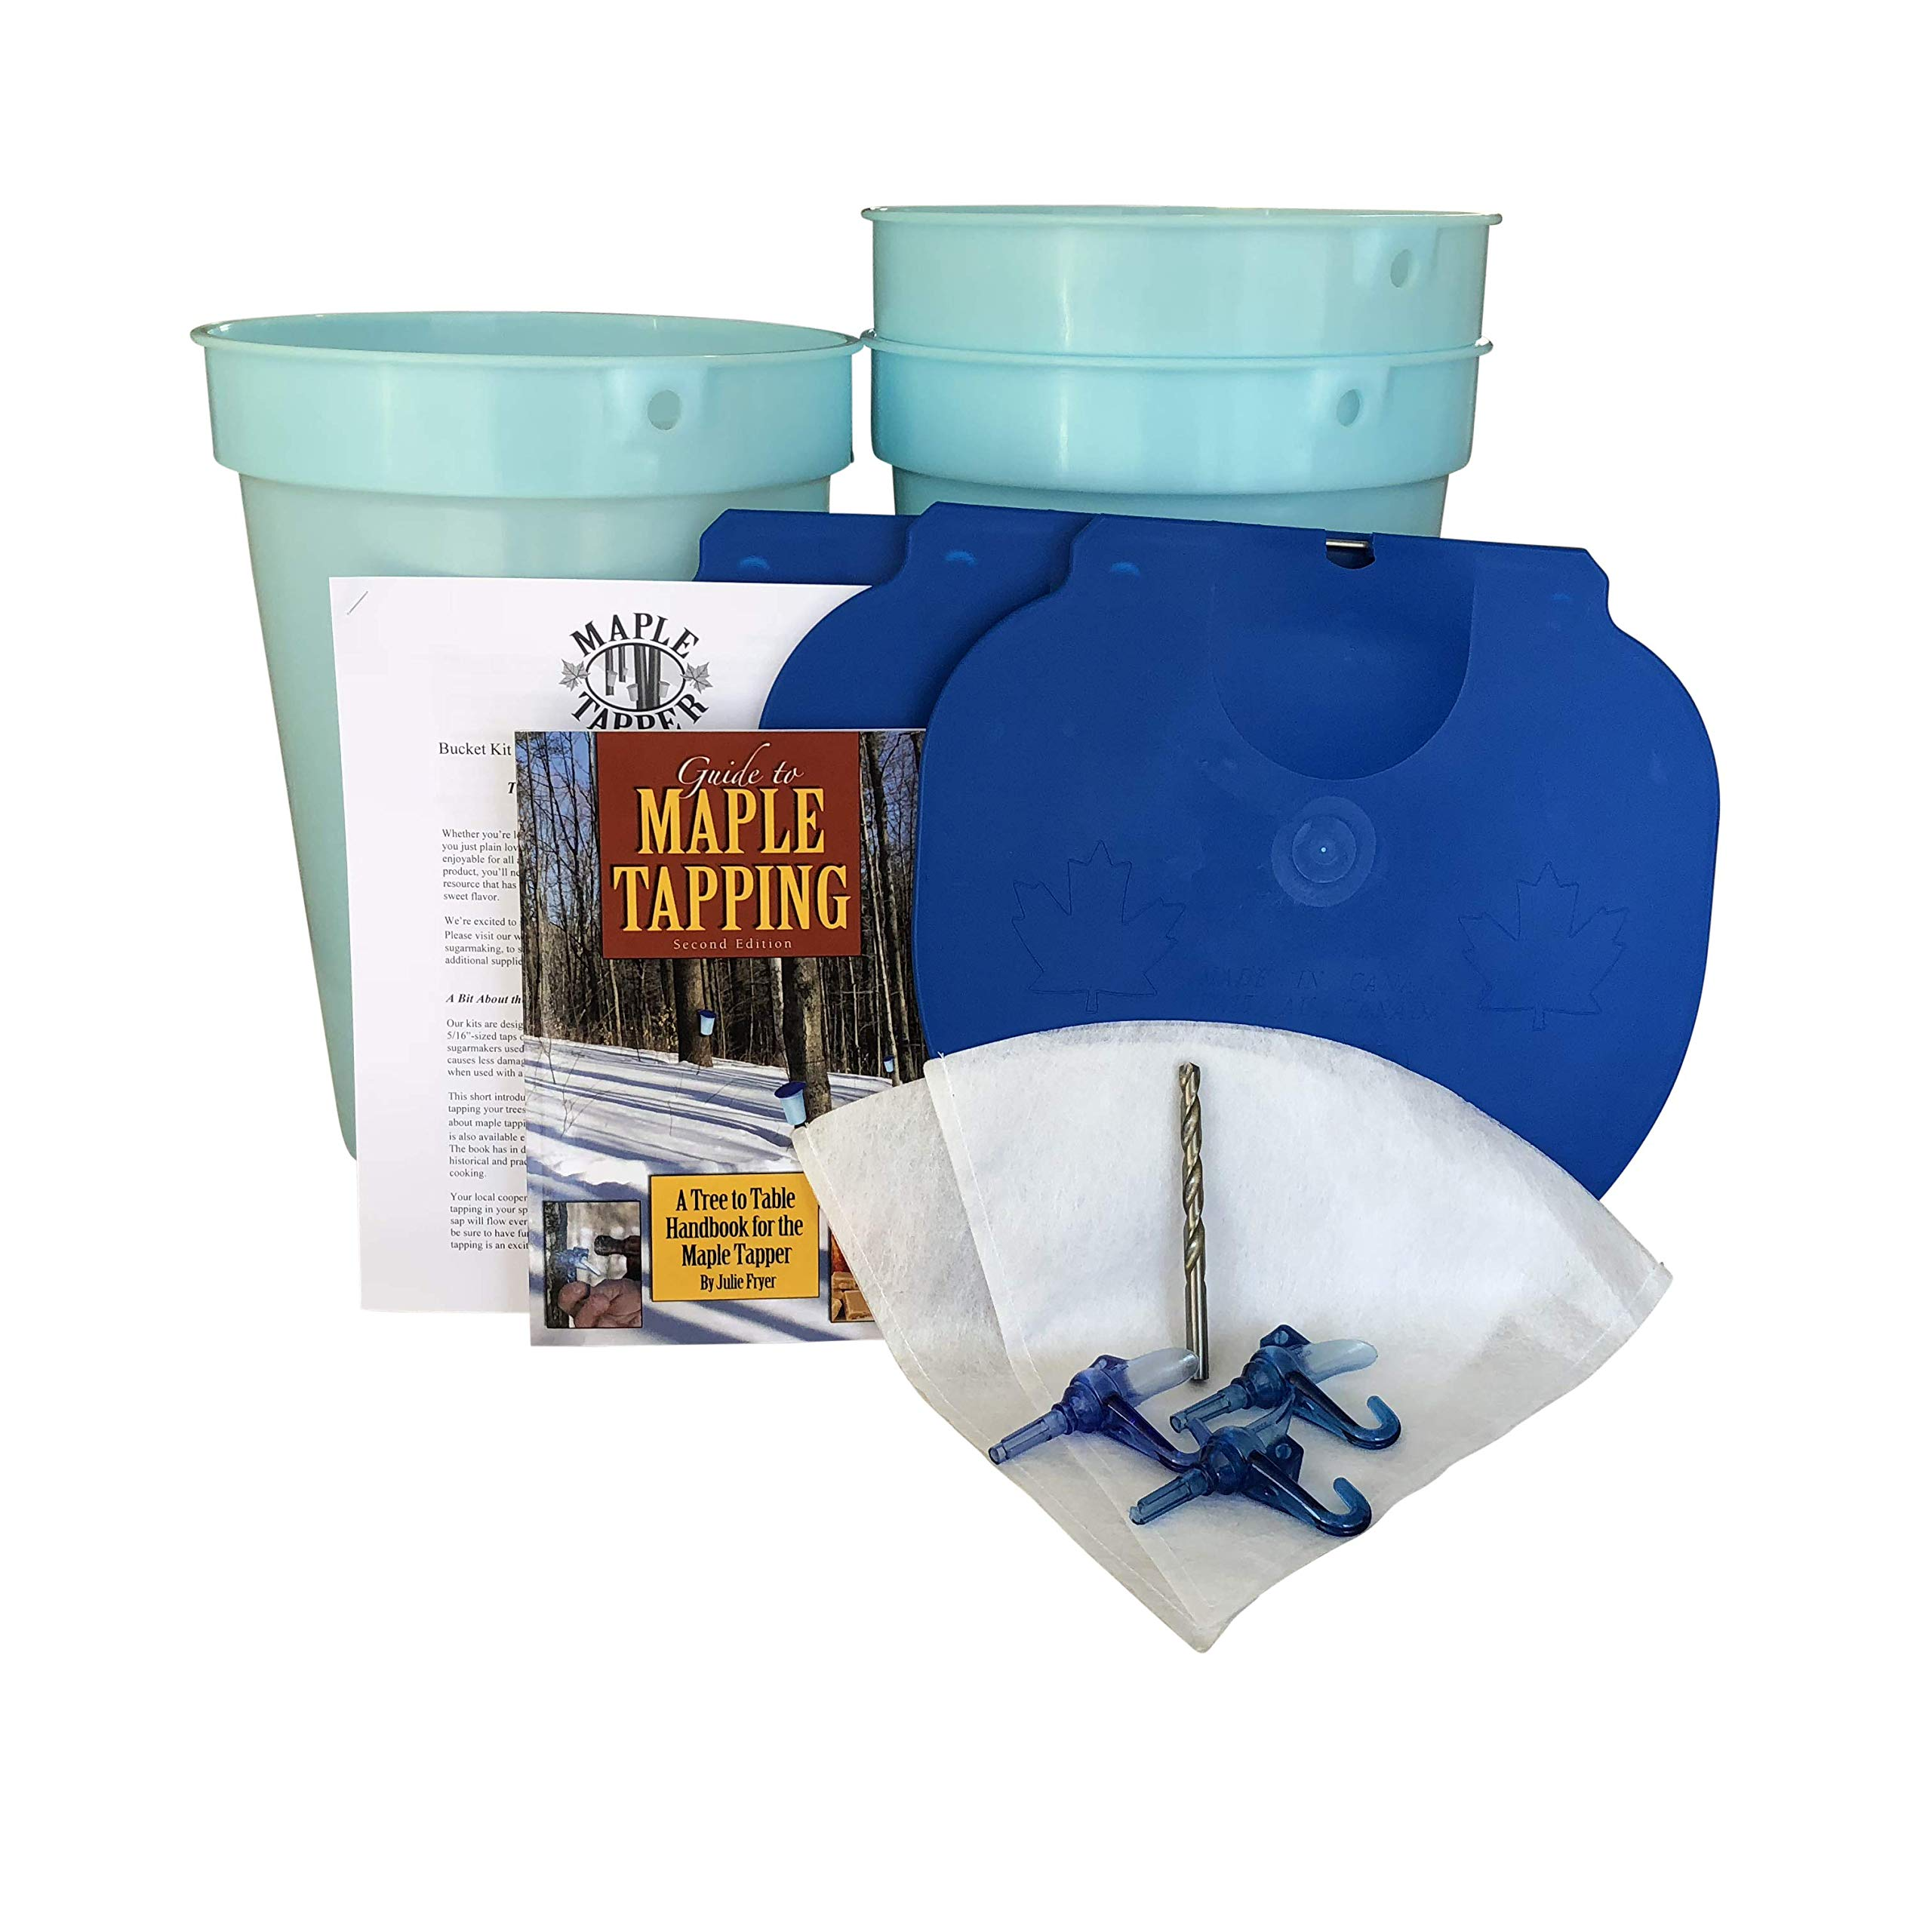 Deluxe Maple Tree Tapping Kit (Tap 3 Trees) Includes 3 Sap Buckets + Lids, 5/16 inch Tree Saver Taps Spiles, Syrup Filter, Tapping Drill Bit, and 80 Page Fully Illustrated Guide to Maple Tapping Book by Maple Tapper